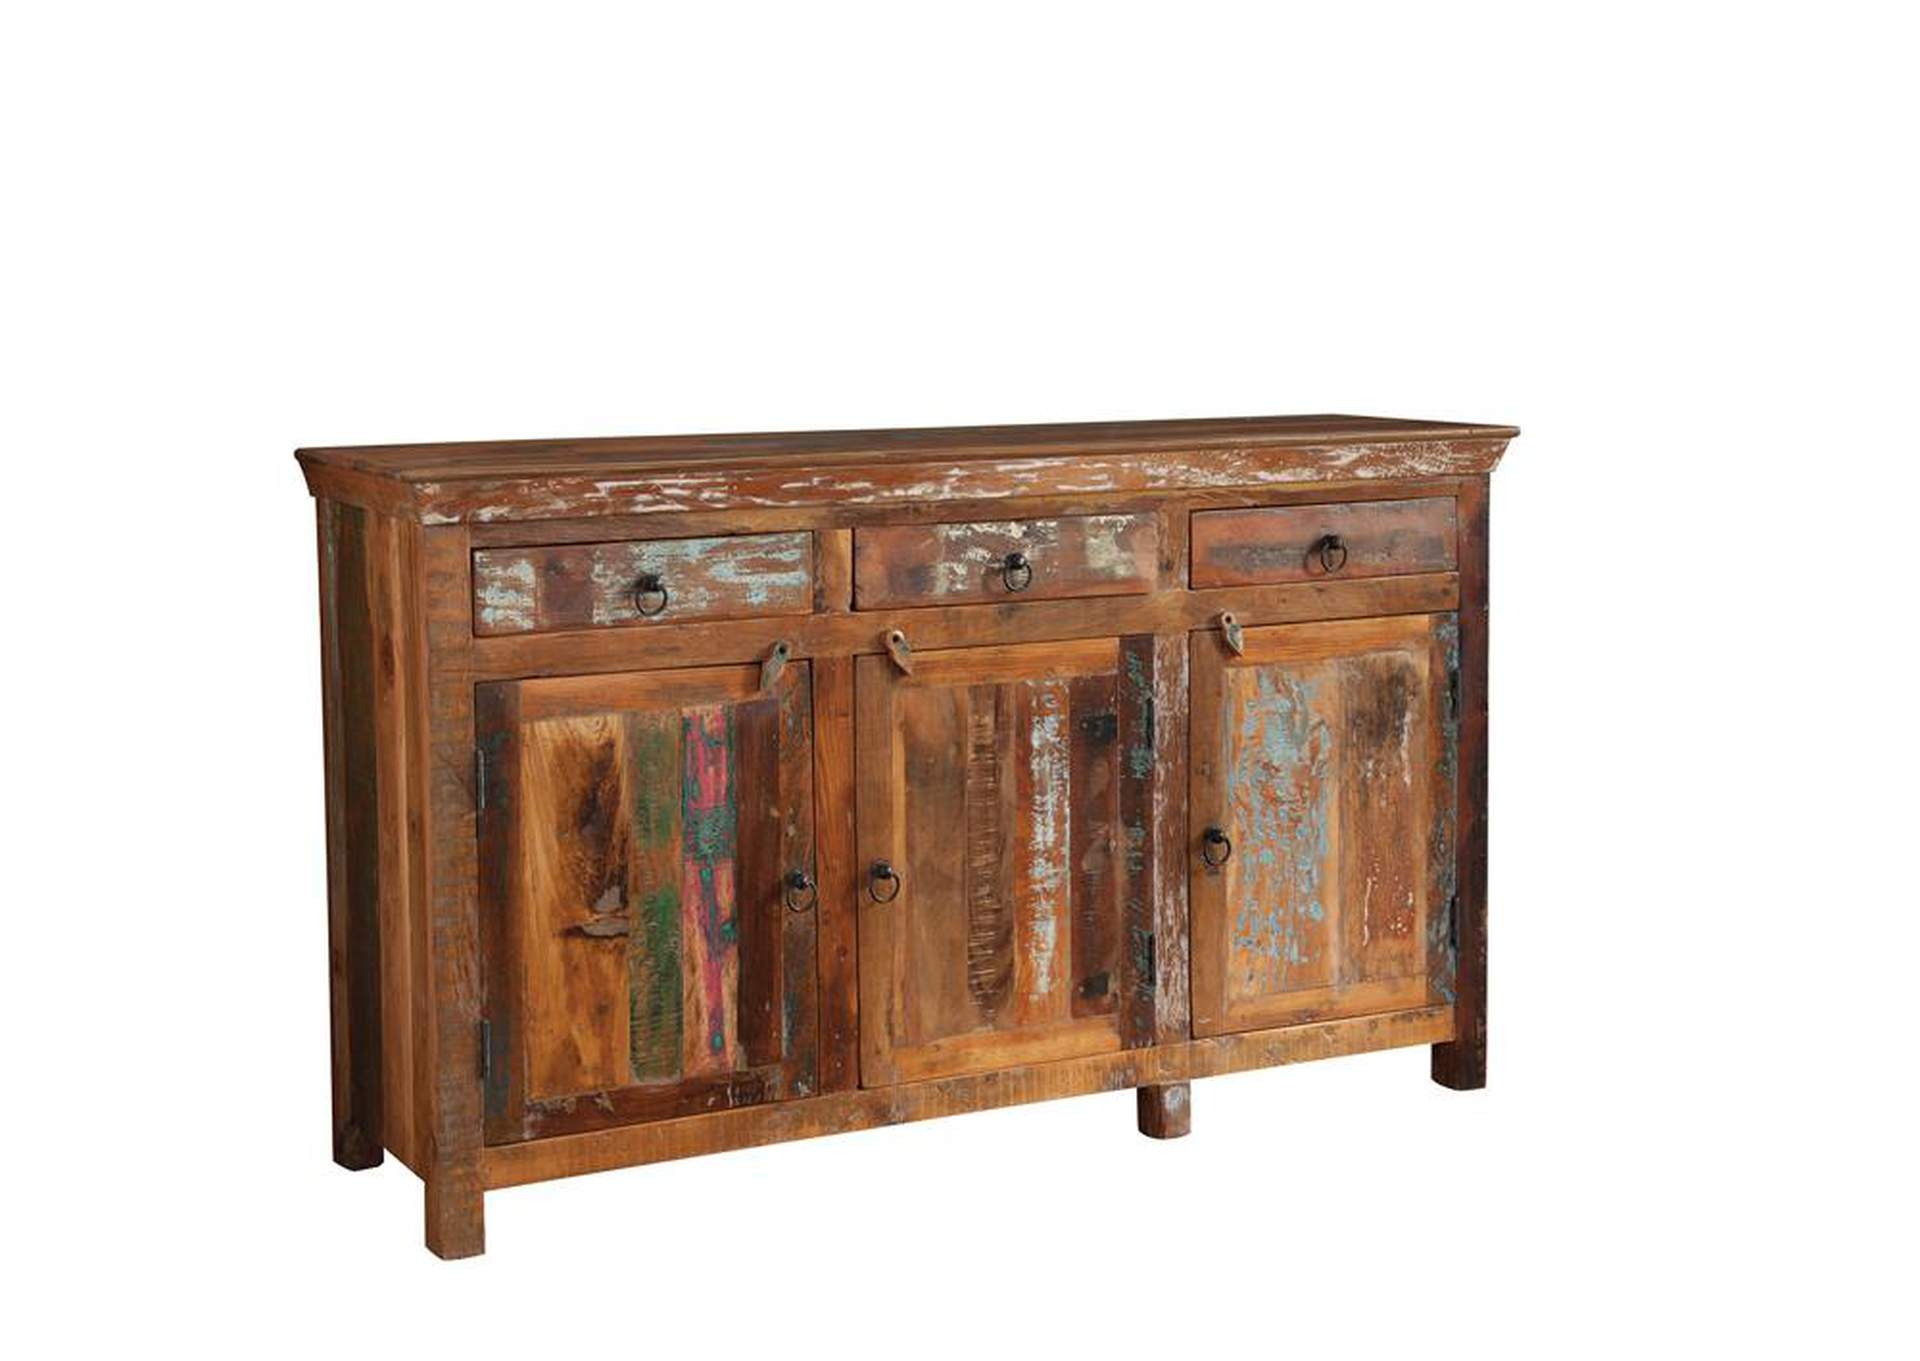 Old Copper Transitional Reclaimed Wood Accent Cabinet,Coaster Furniture